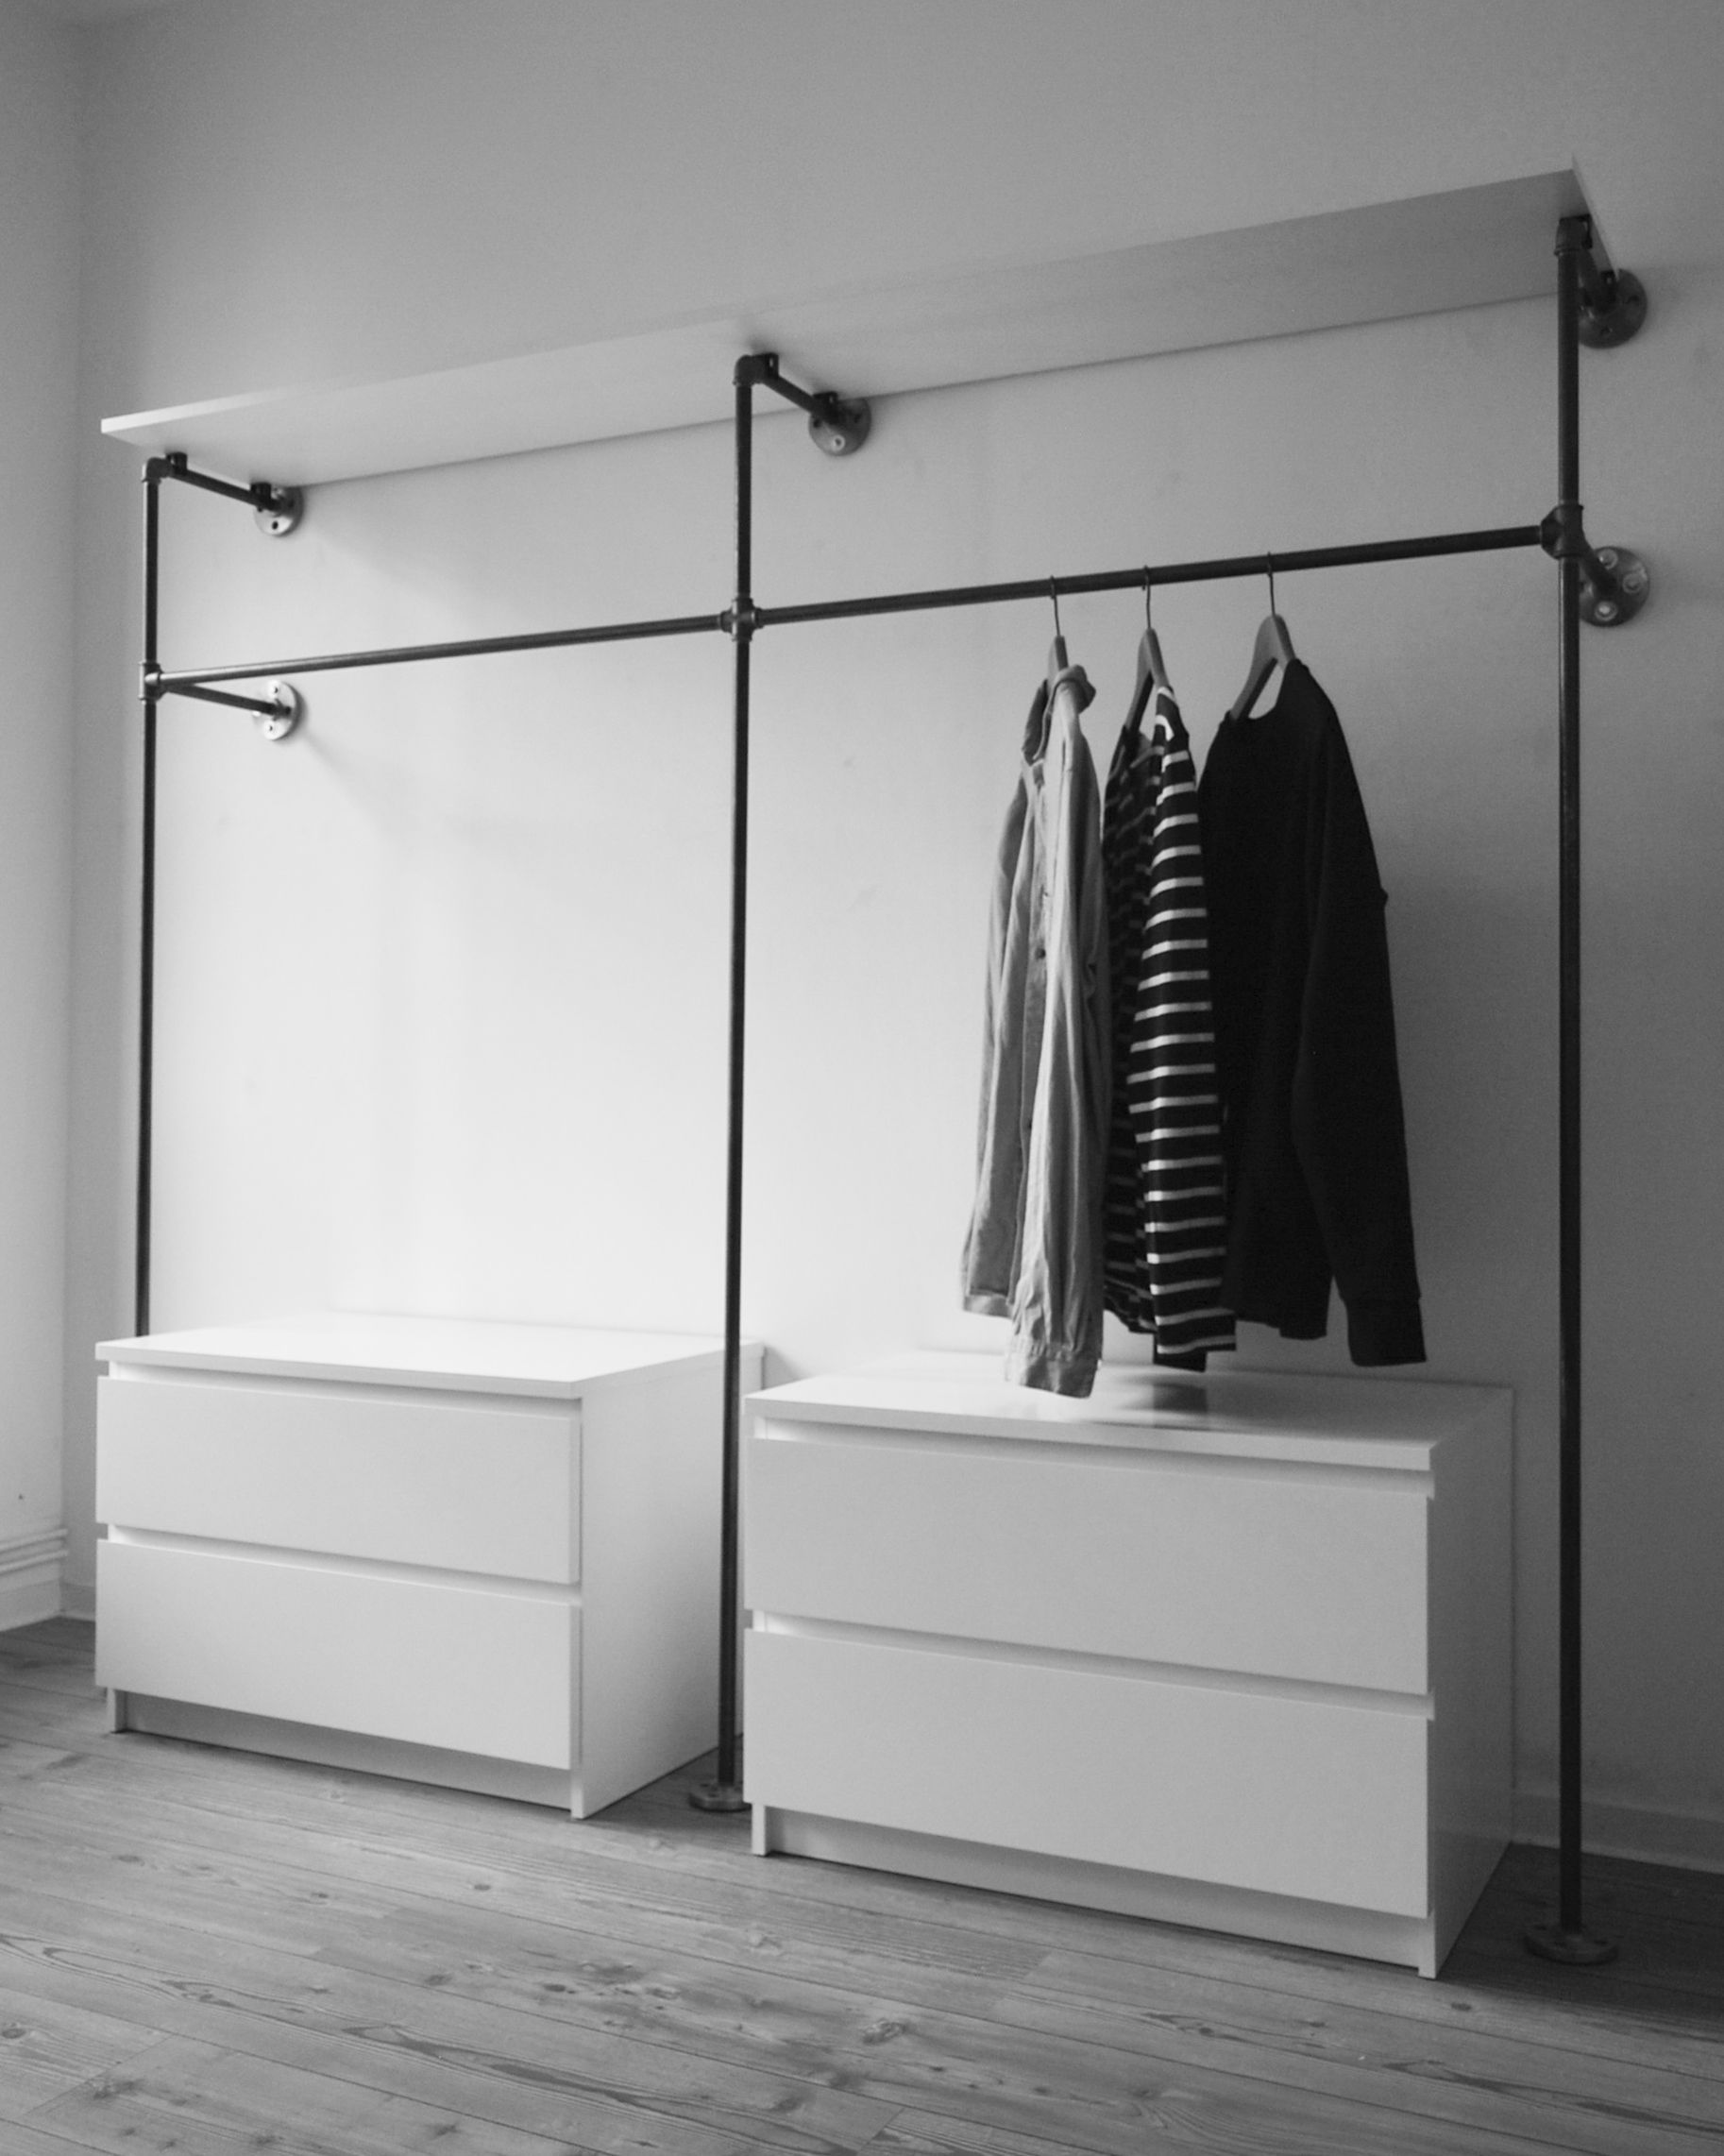 offener kleiderschrank kleiderstange garderobe industrial design industriedesign. Black Bedroom Furniture Sets. Home Design Ideas